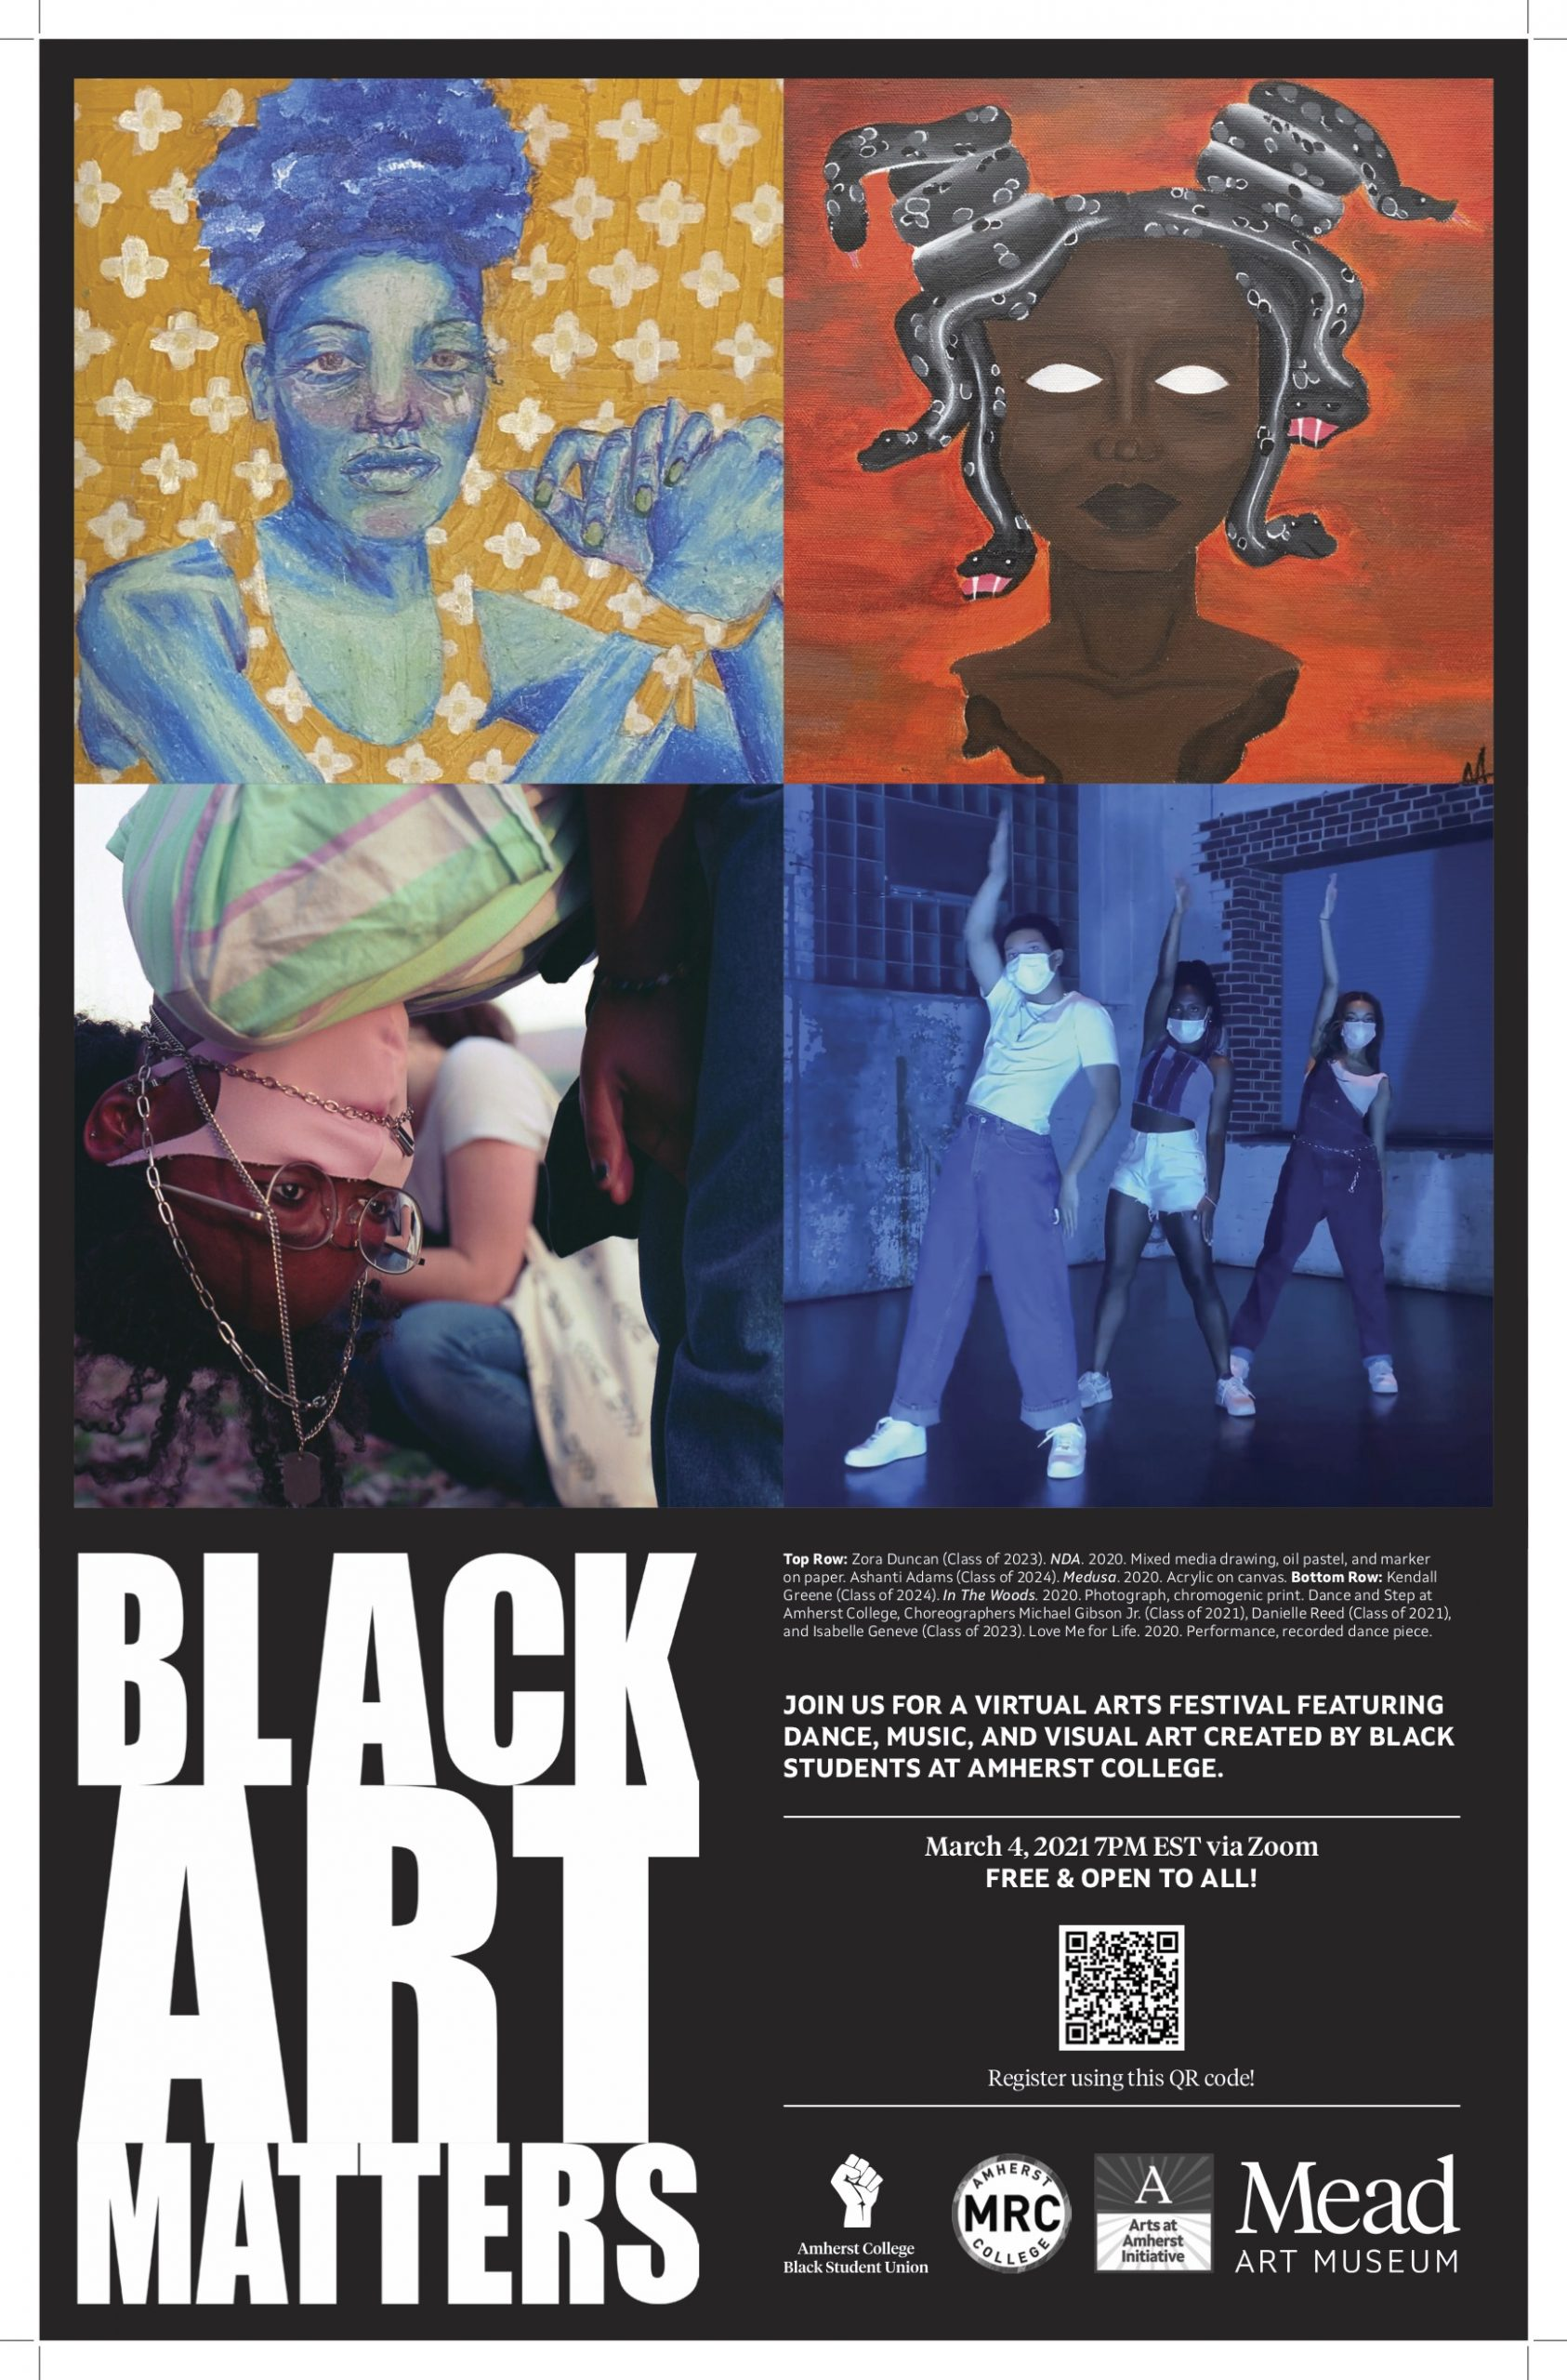 4th Annual Black Art Matters Festival at Amherst College